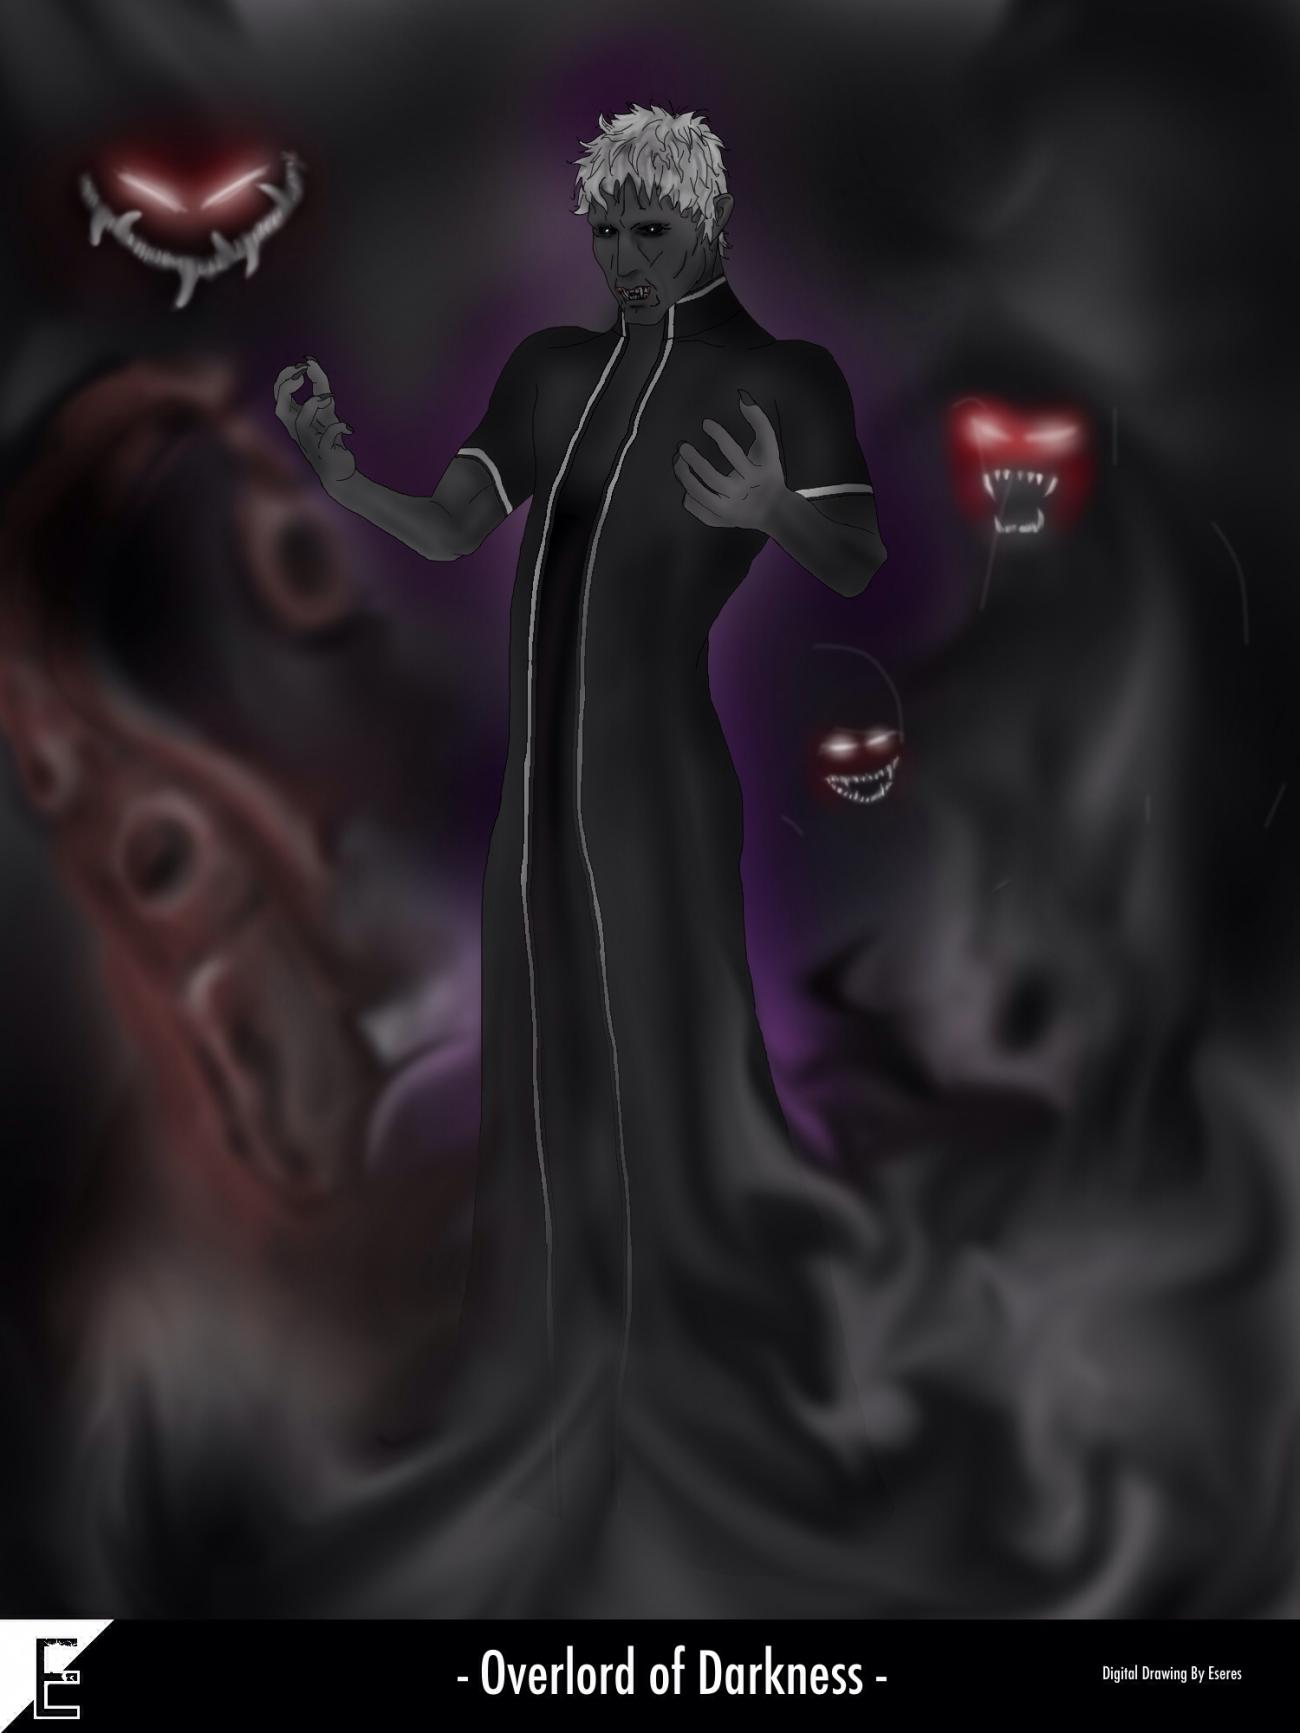 Overlord of Darkness by Eseres